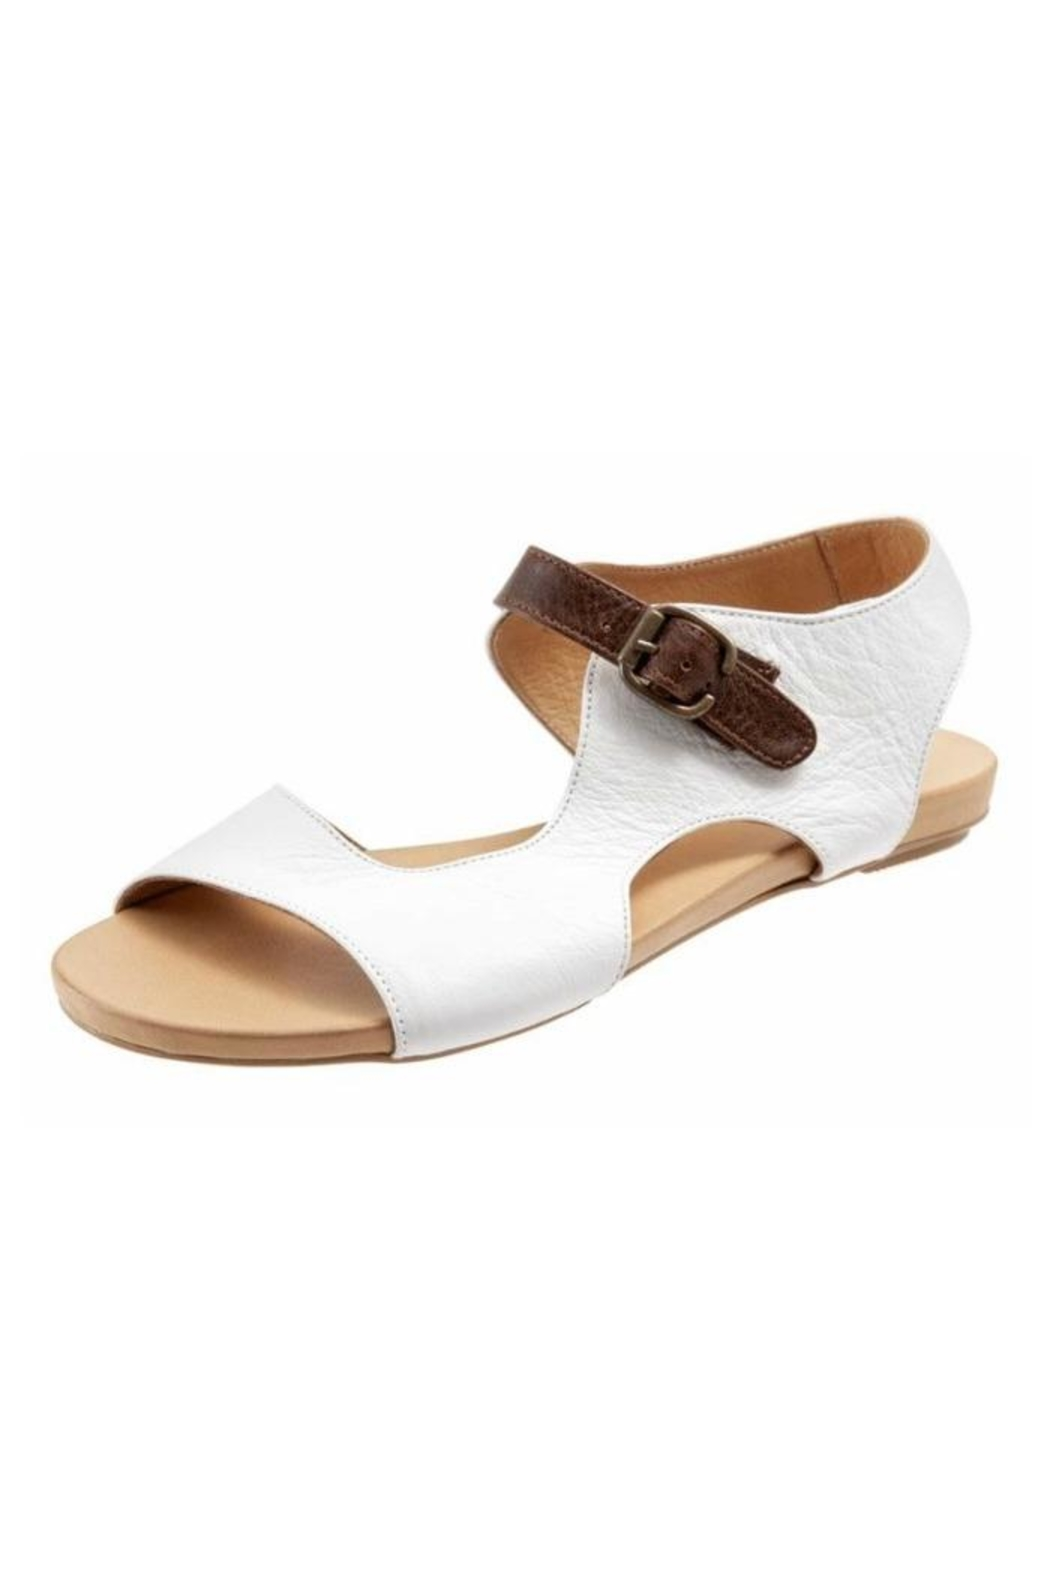 Bueno Shoes Bueno Kina Sandals - Front Cropped Image